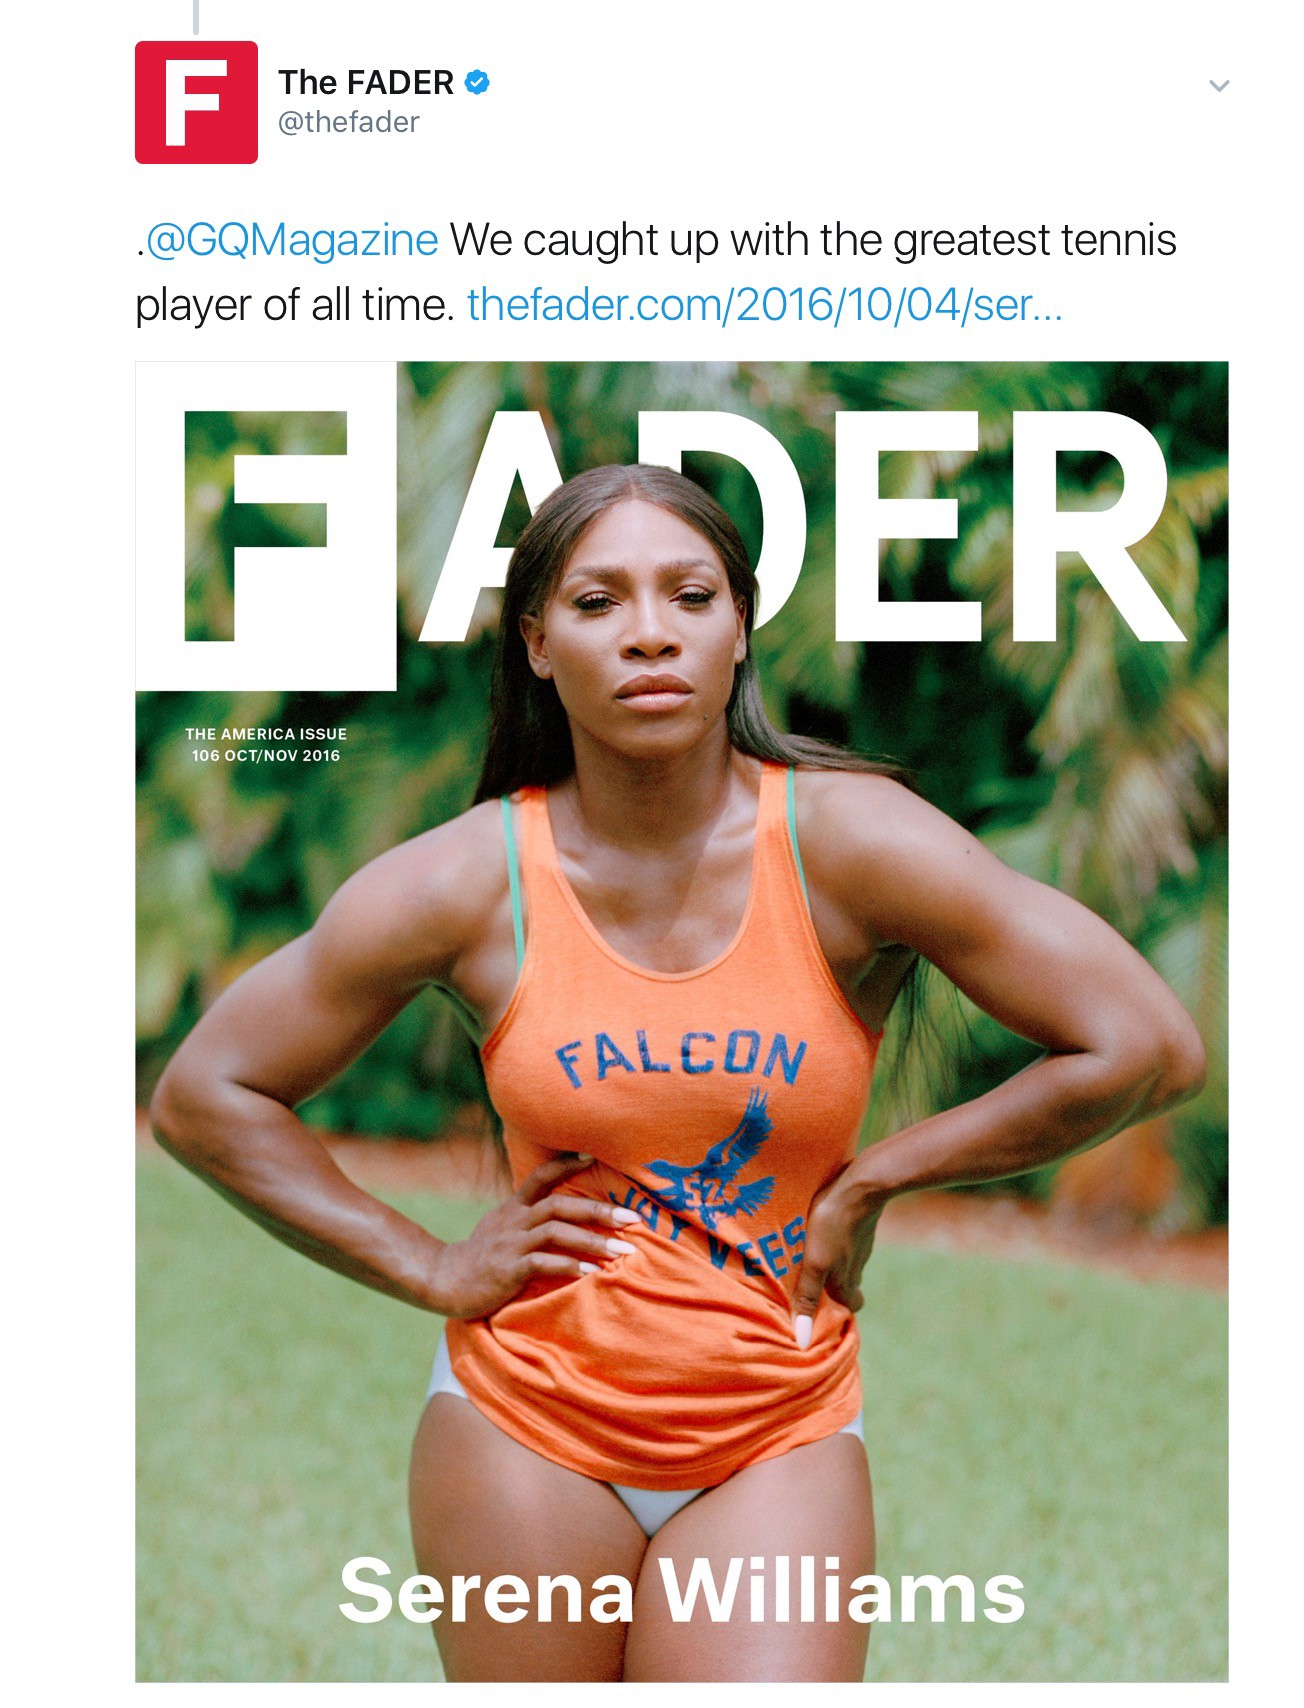 The greatest serena williams or roger federer alatenumo medium without a doubt federer is the greatest male tennis player of all times while serena is the greatest female tennis player nvjuhfo Image collections